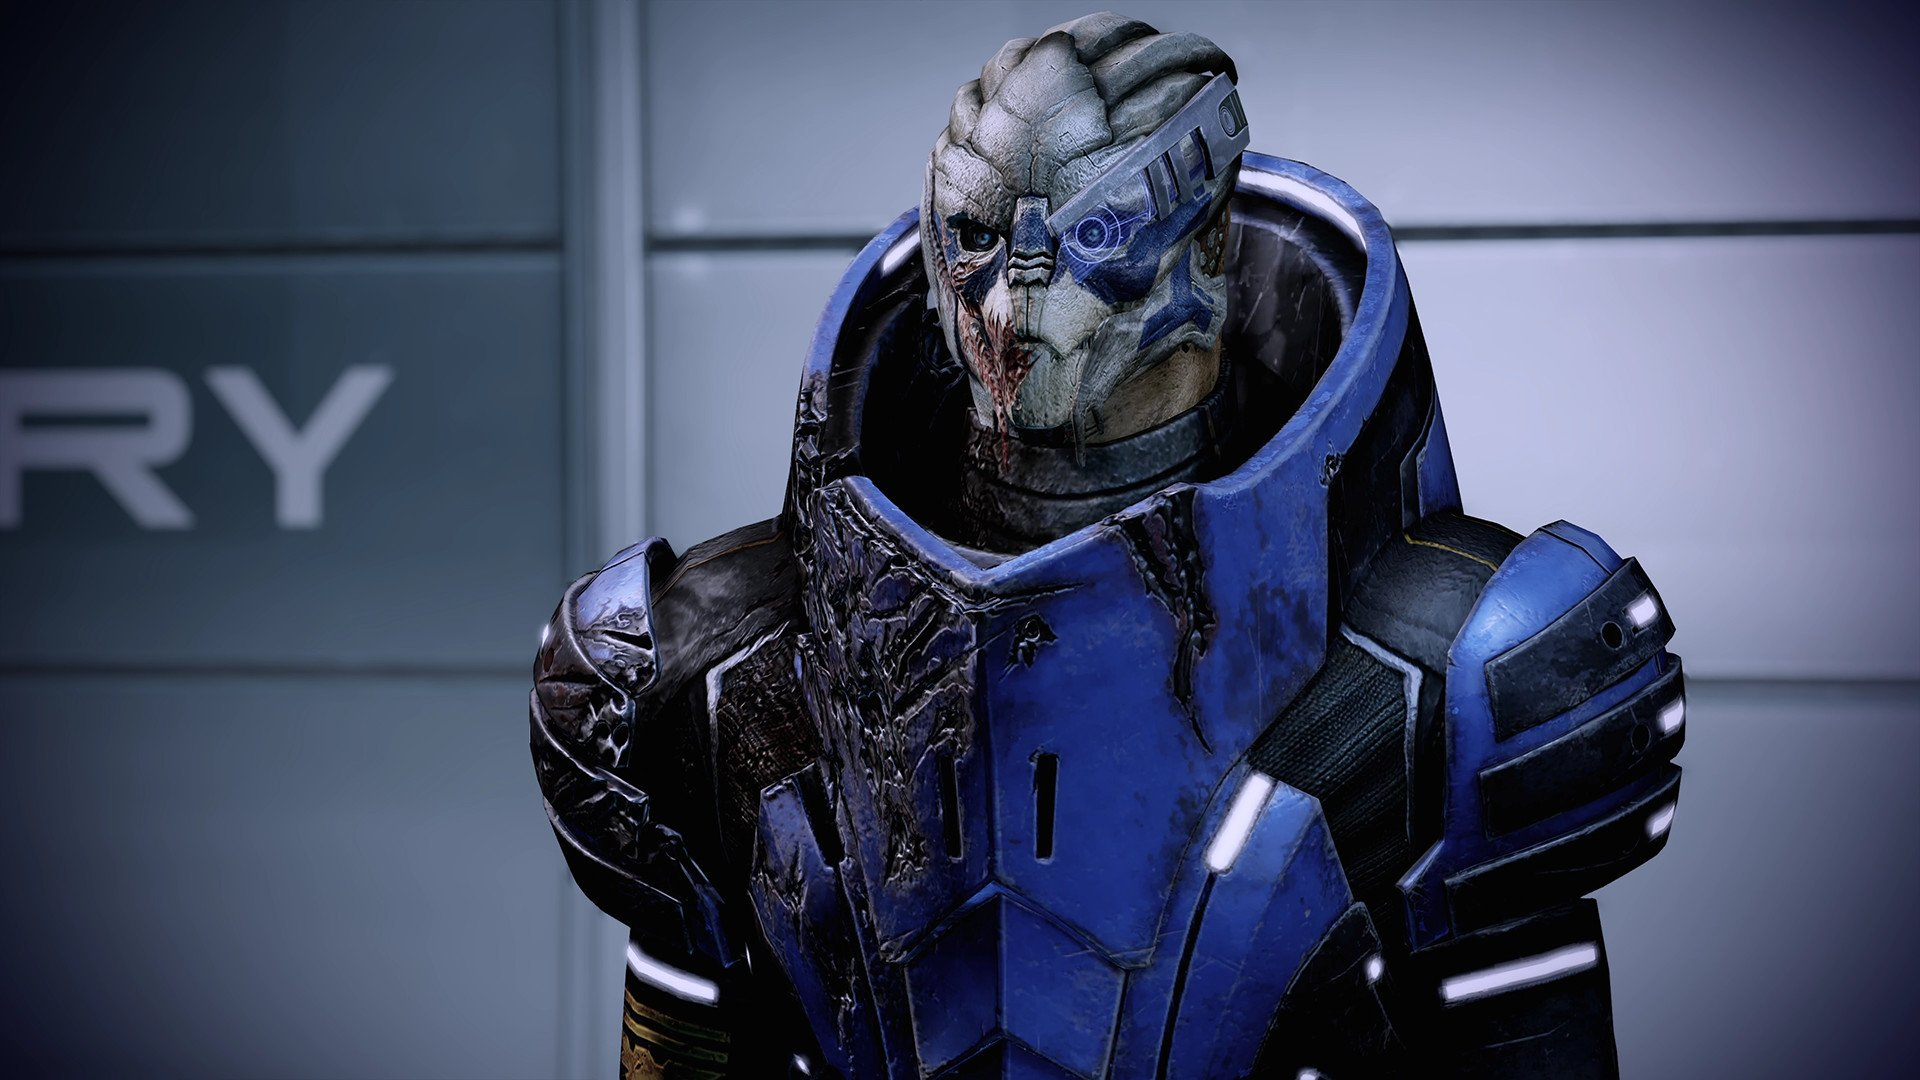 Mass Effect: Legendary Edition didn't ship with an FOV toggle on PC, so fans made one screenshot